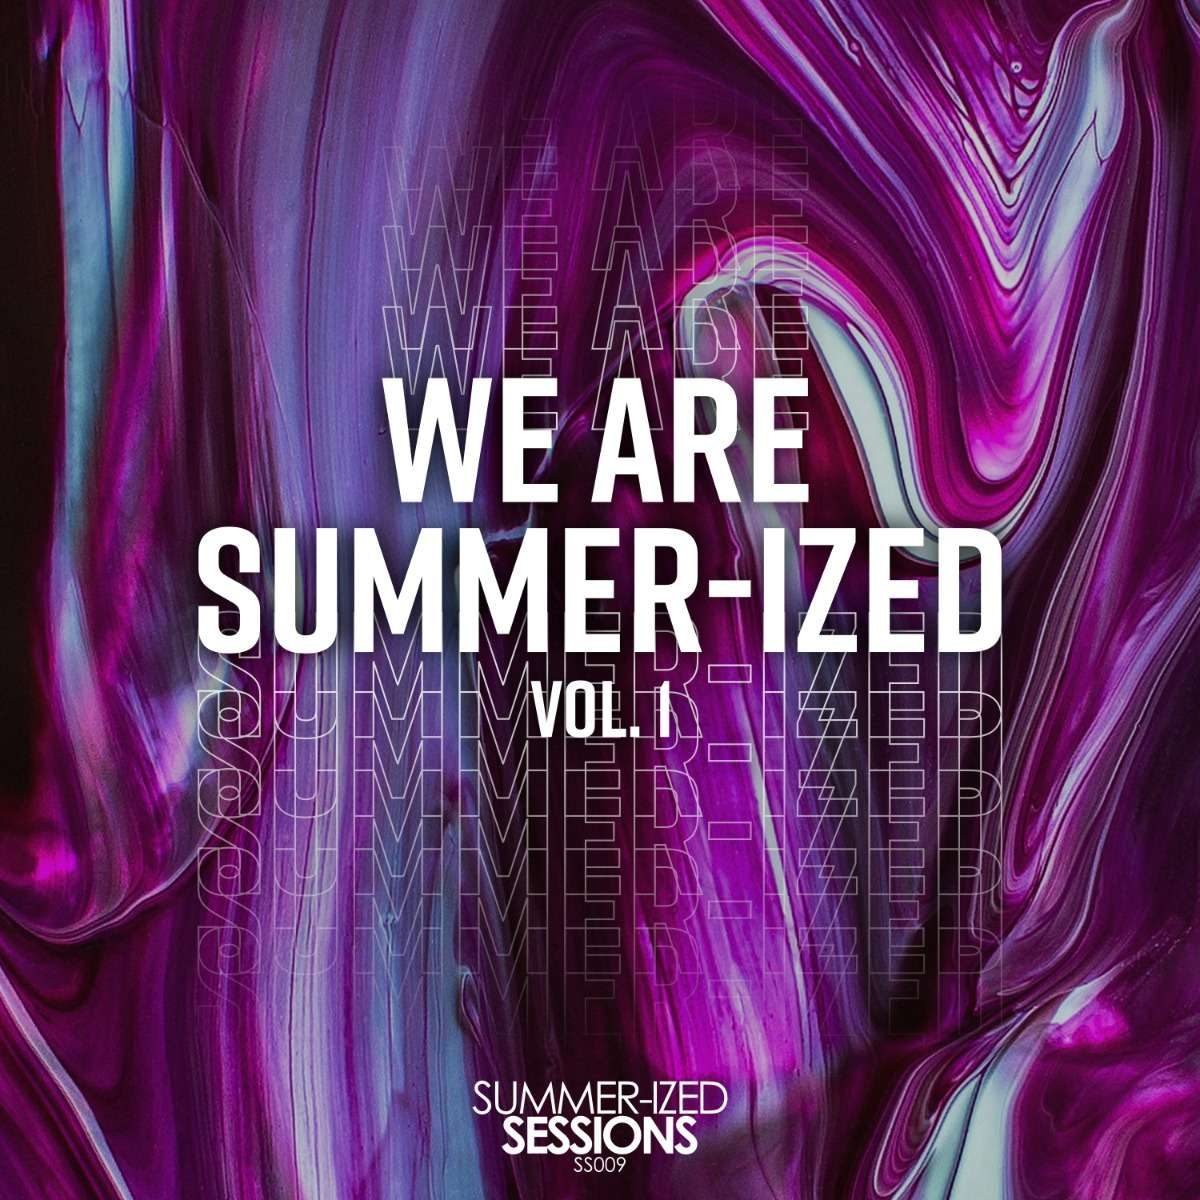 We Are Summer-ized, Vol. 1